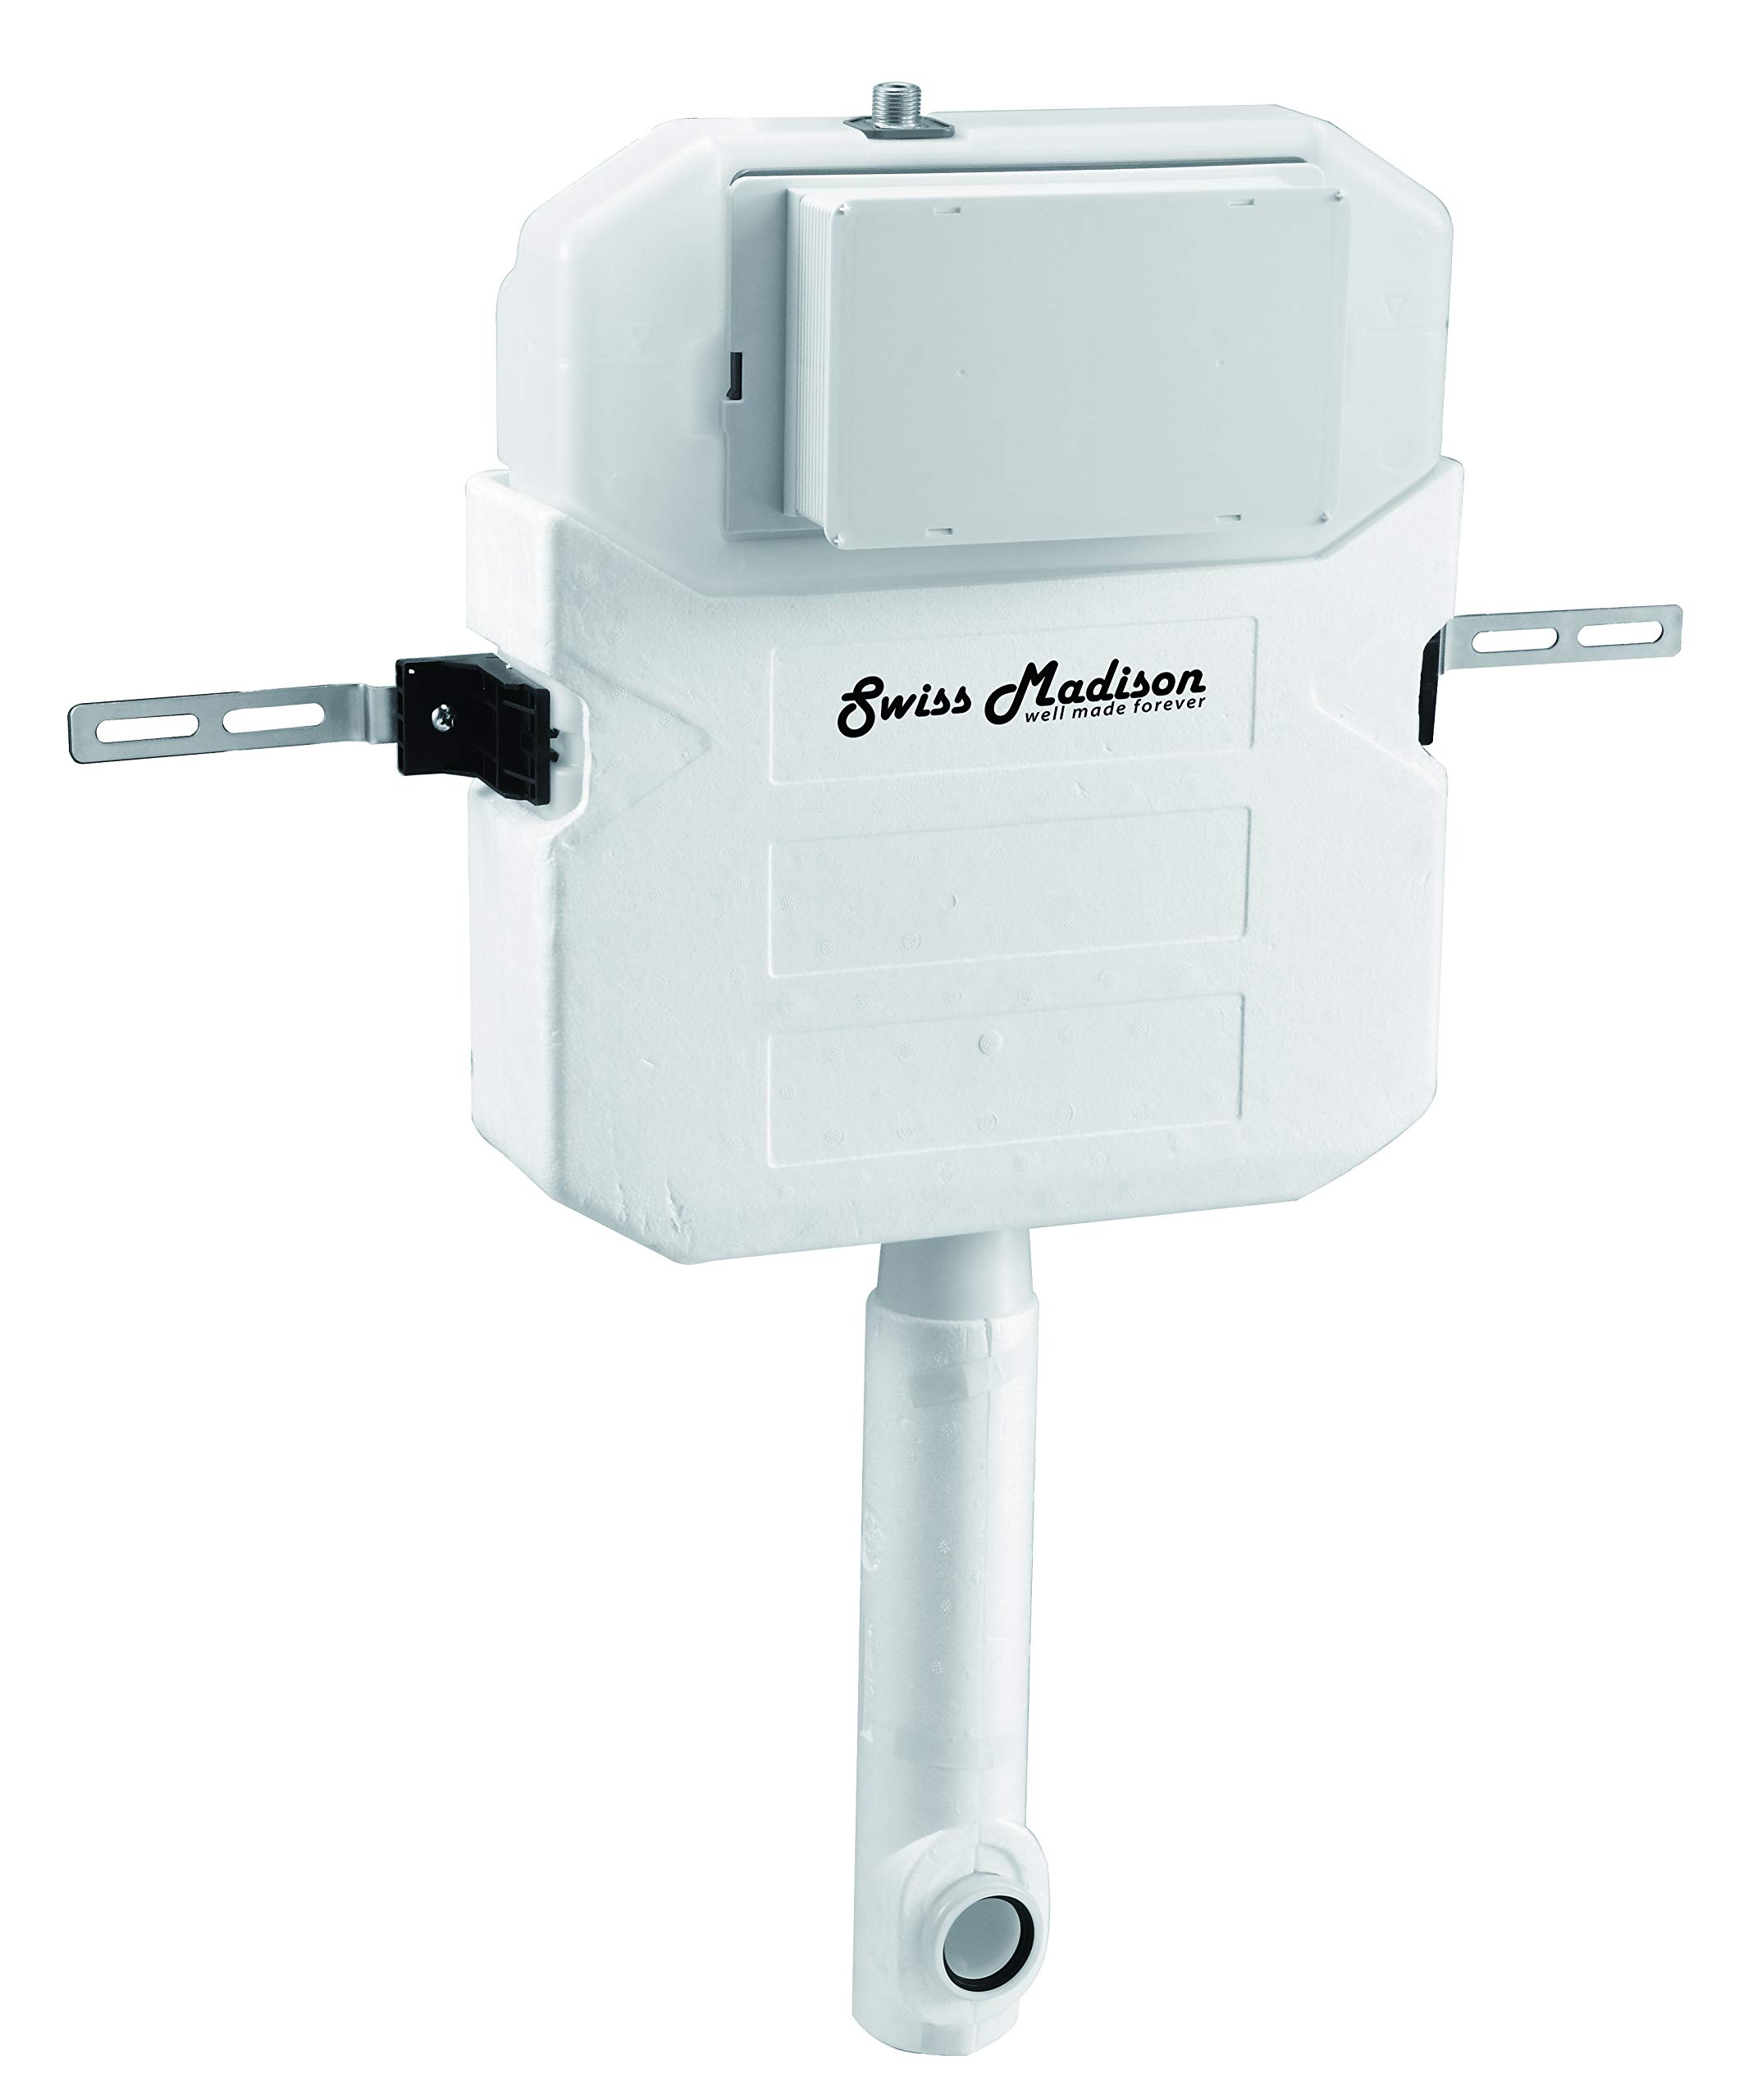 Swiss Madison Well Made Forever SM-WC326 Toilet Tank Carrier, For 2 x 6 Commercial Studs, White